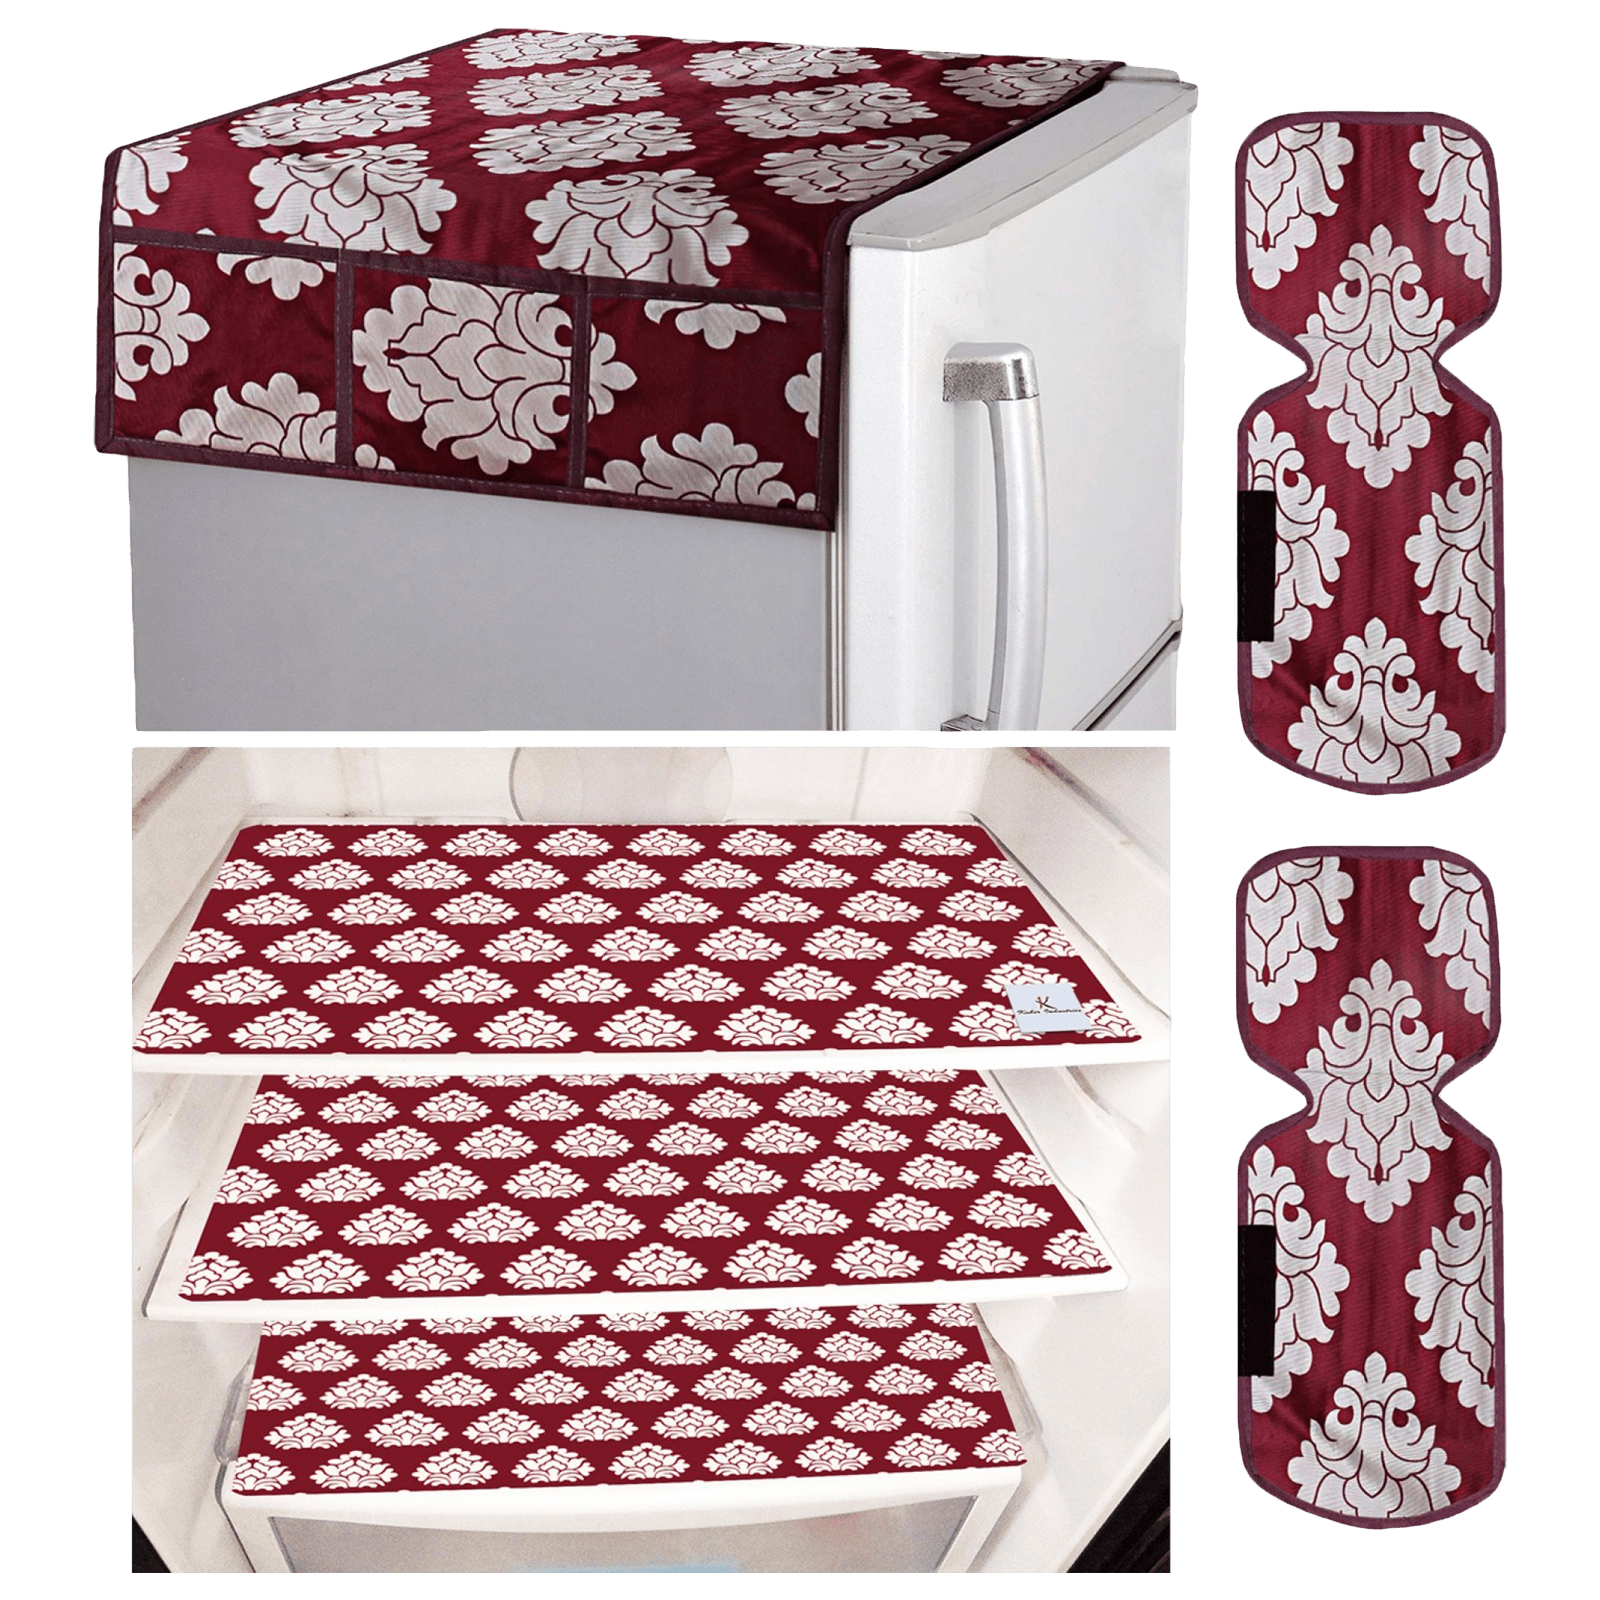 Kuber Industries Mat For Refrigerator (Easily Hand Washable, CTKTC033659, Maroon)